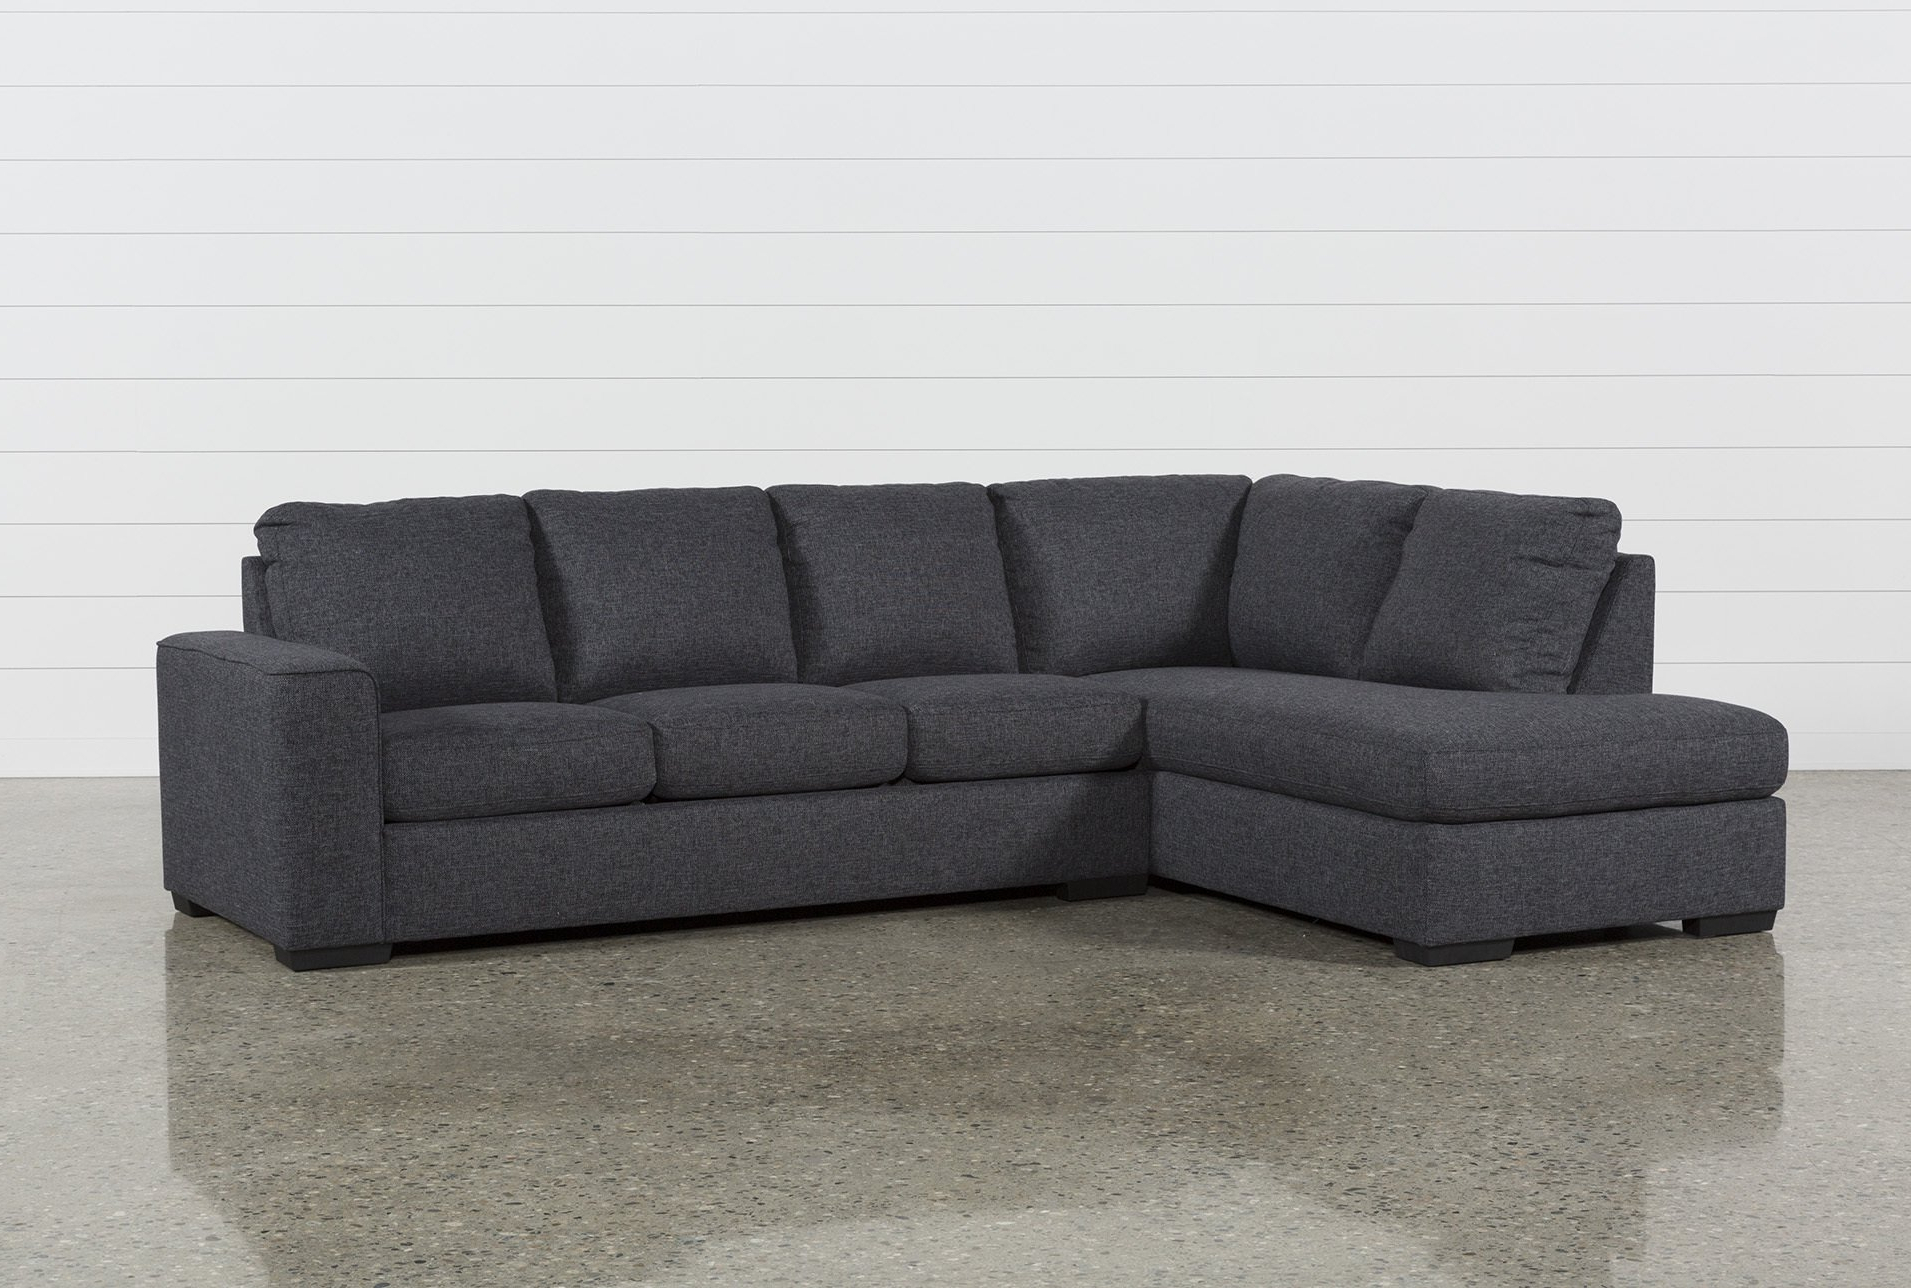 Malbry Point 3 Piece Sectionals With Raf Chaise In Newest Lucy Dark Grey 2 Piece Sectional W/laf Chaise (View 11 of 20)